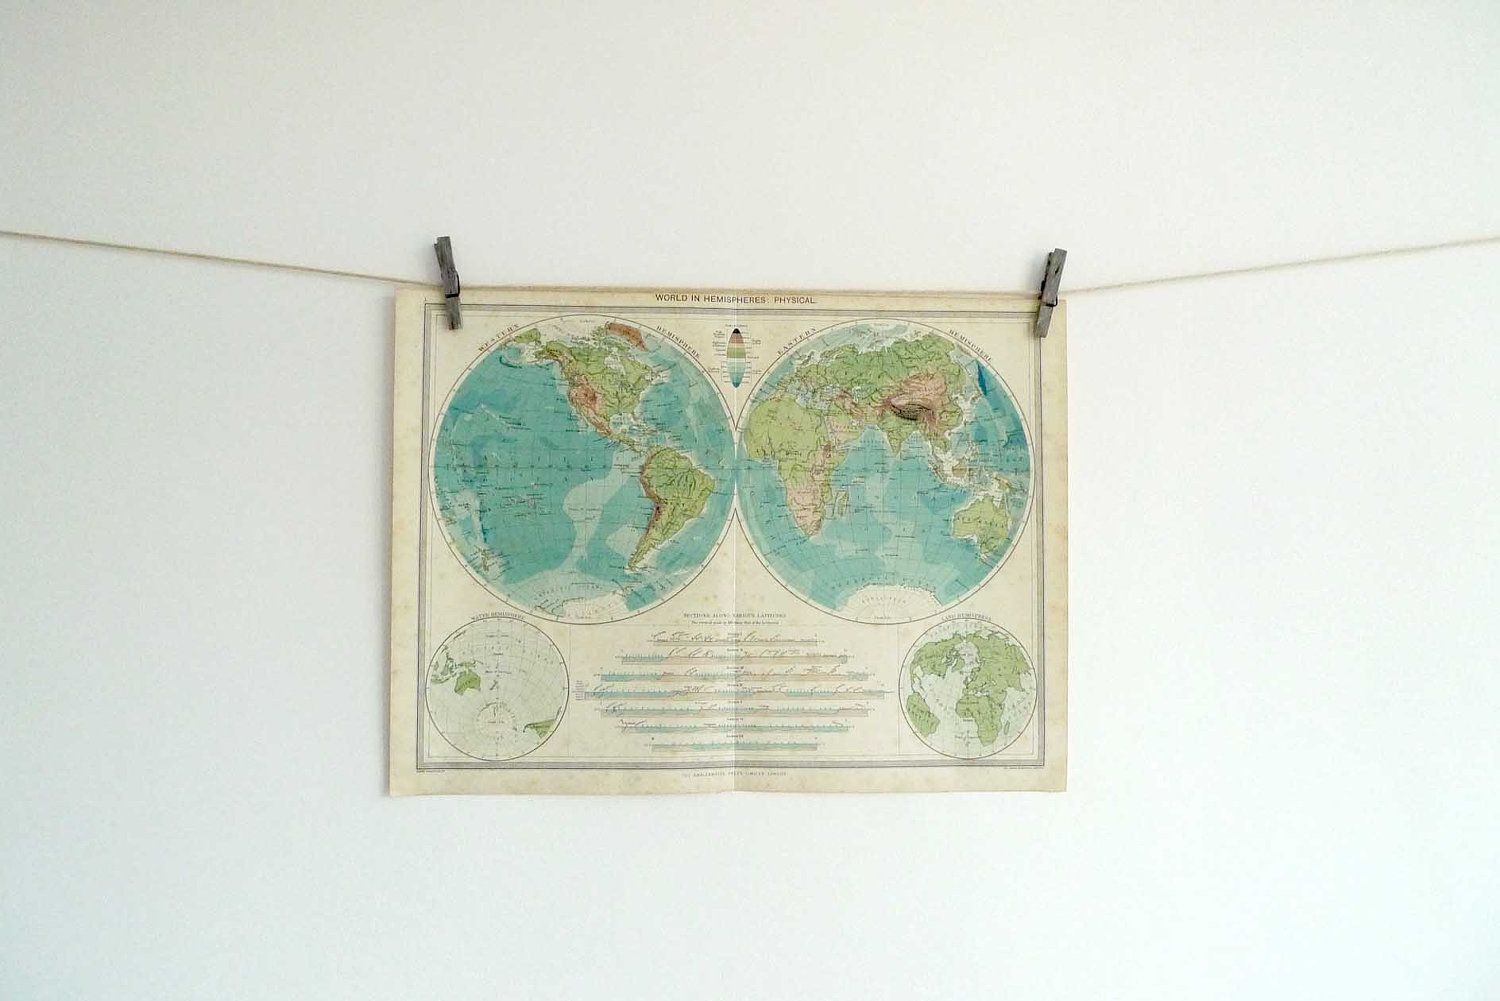 World Map Poster Print - a vintage map of the world in hemispheres. $25.00, via Etsy.